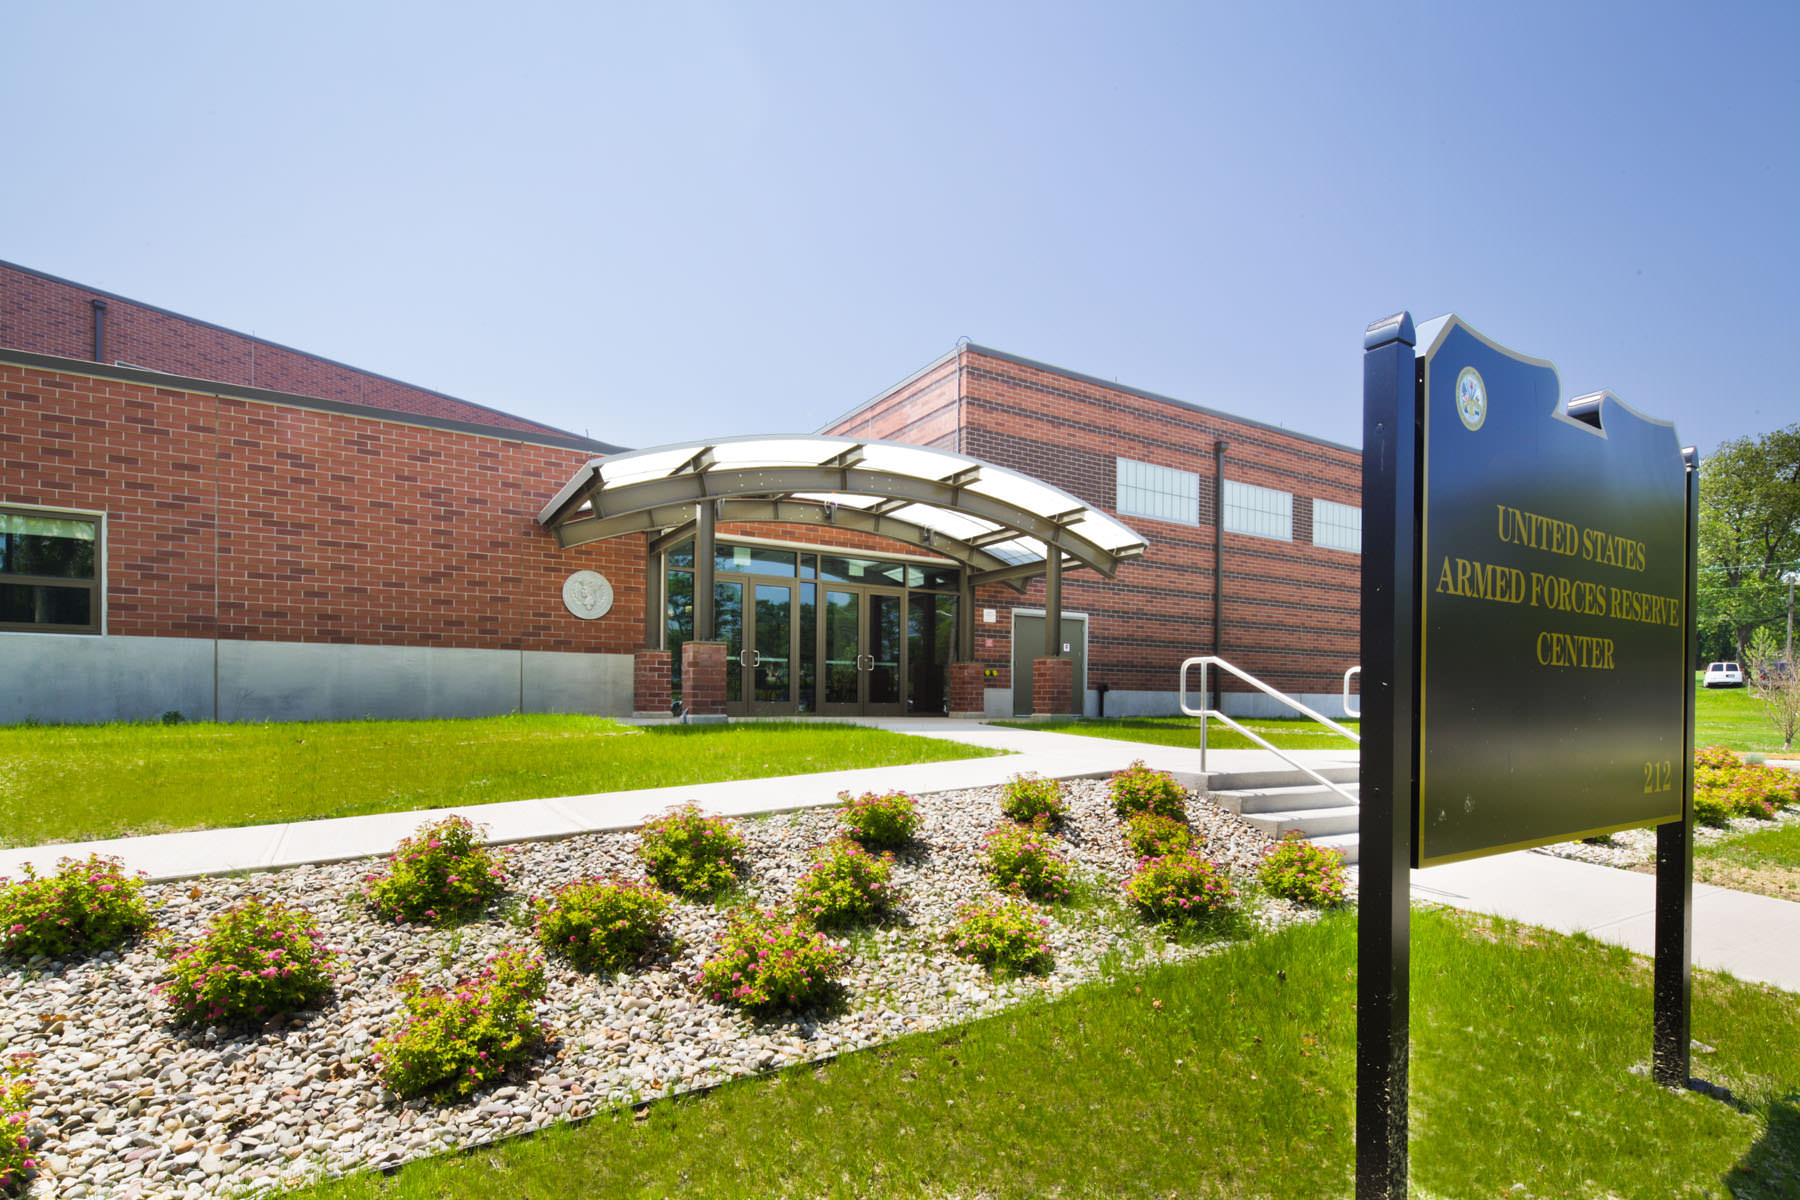 Fort Hamilton Armed Forces Reserve Center The Pike Company